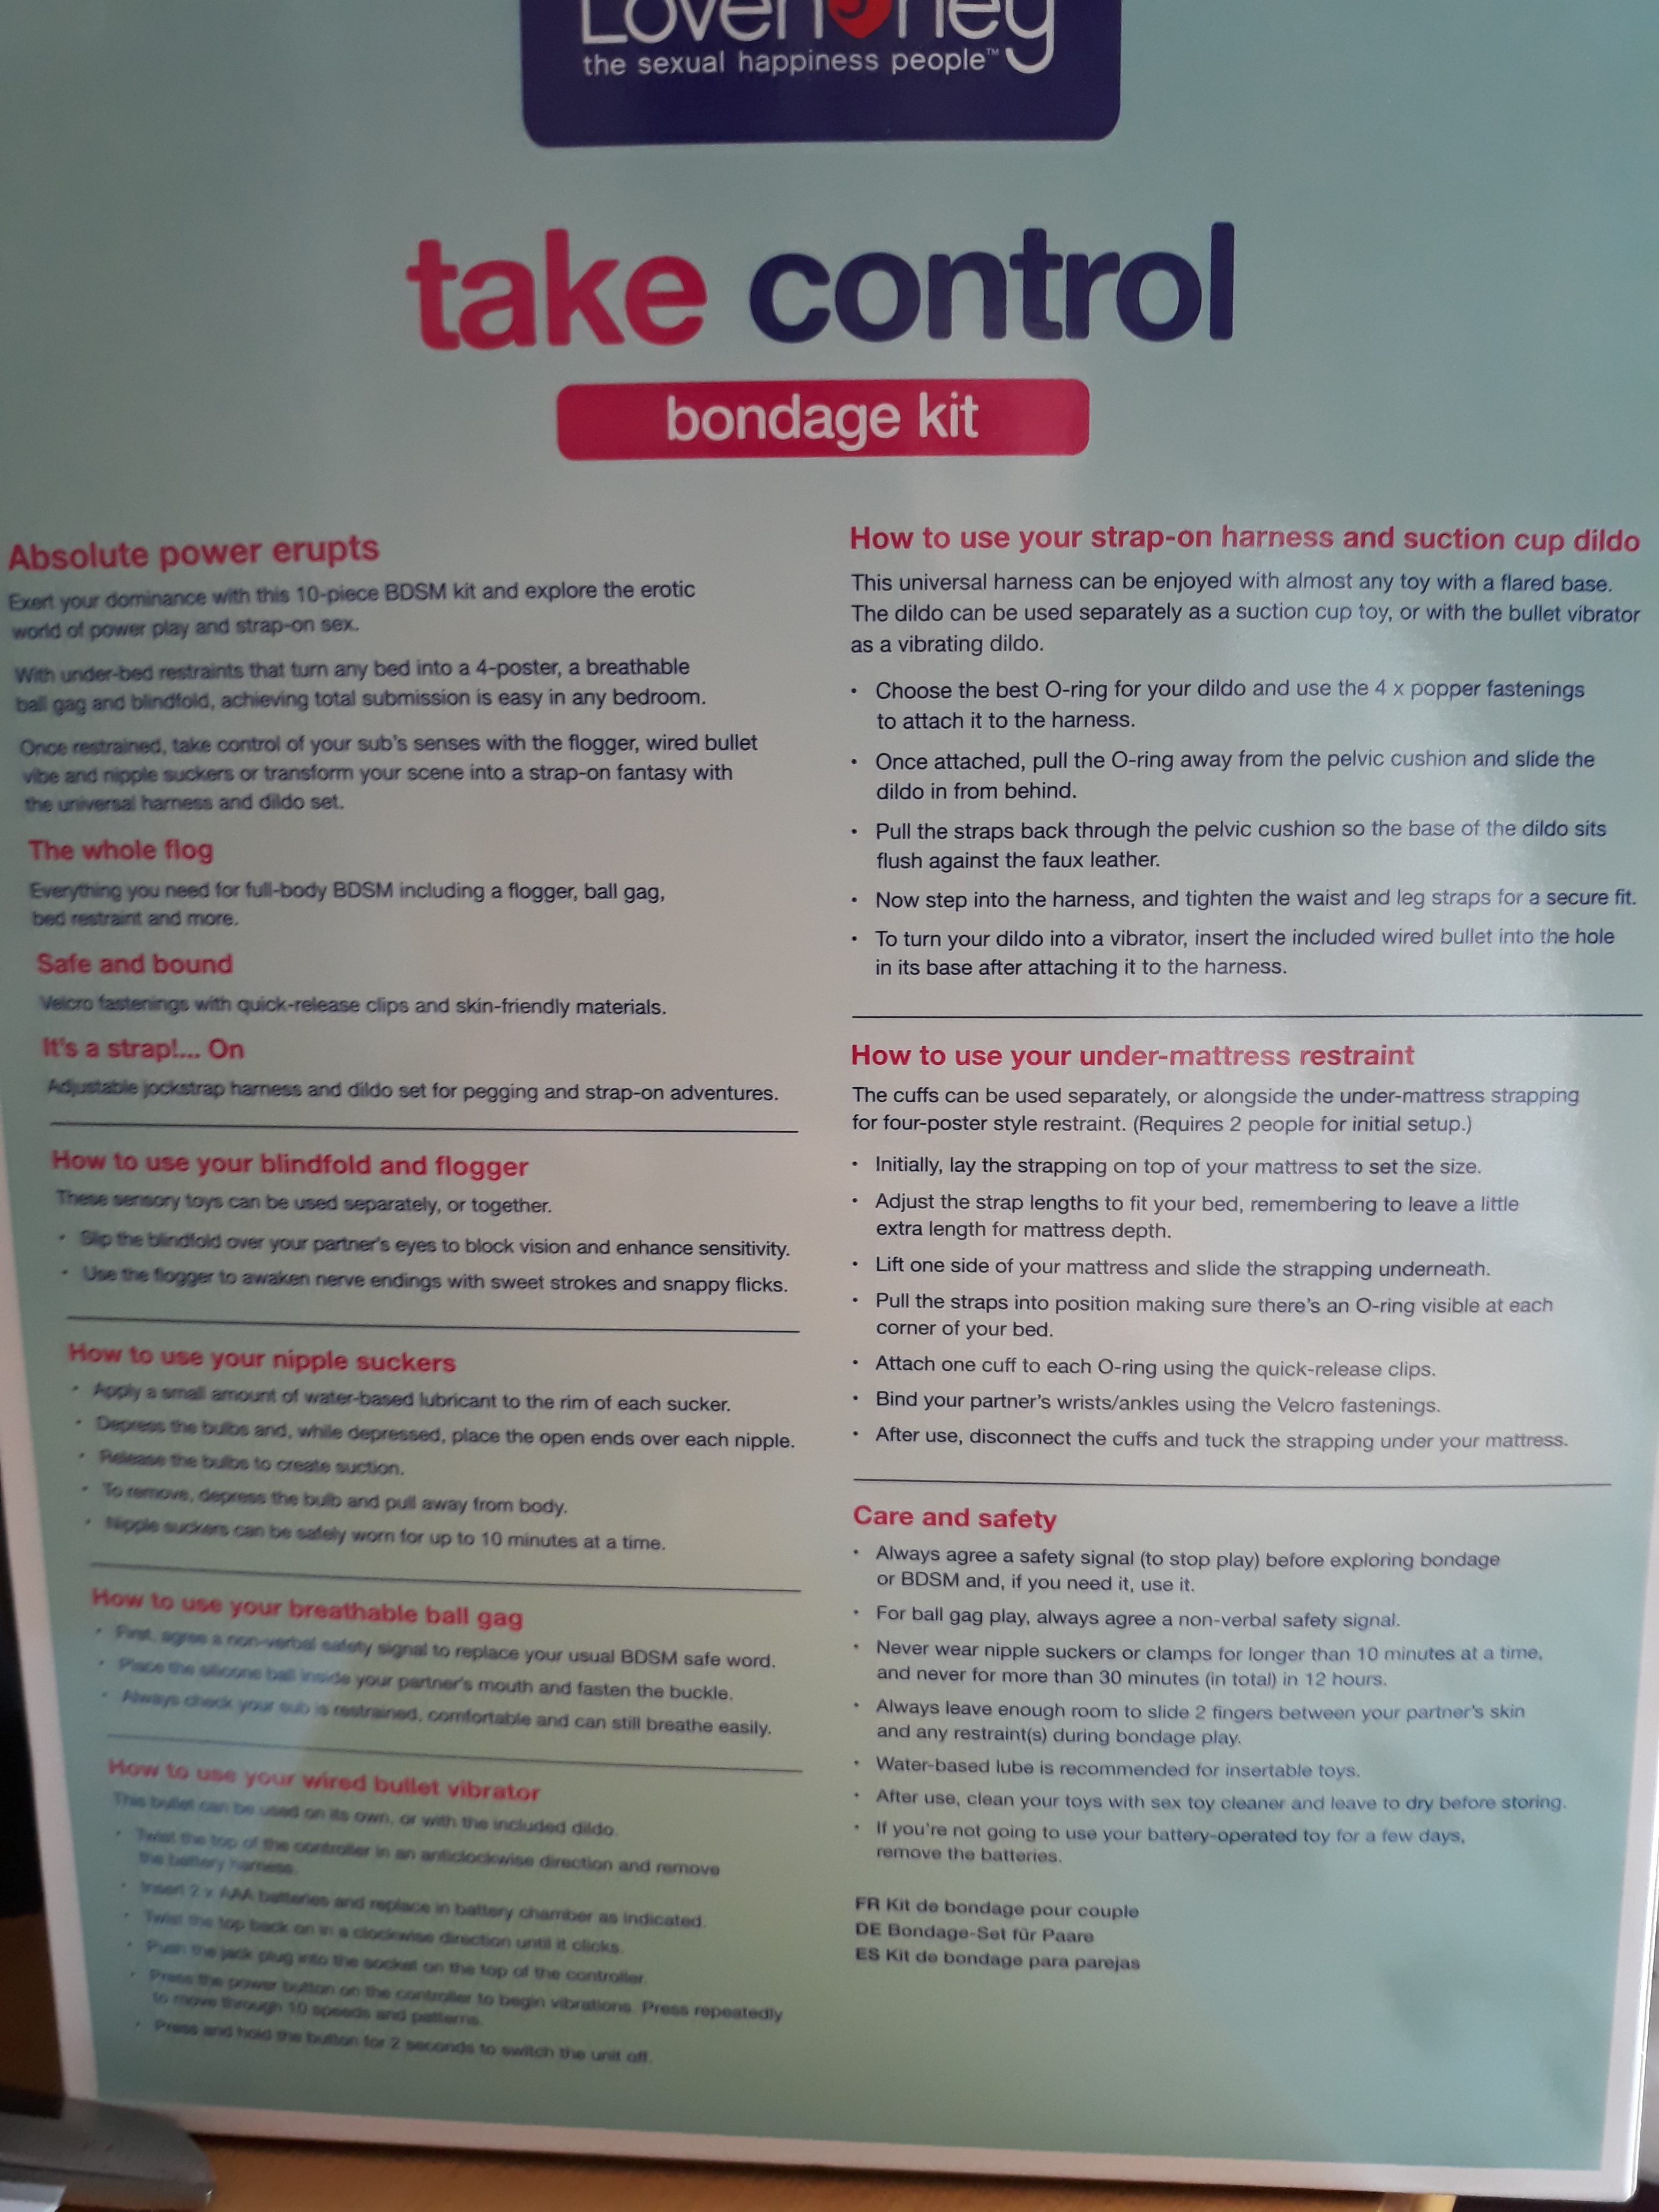 The back of the Take Control Bondage Kit box